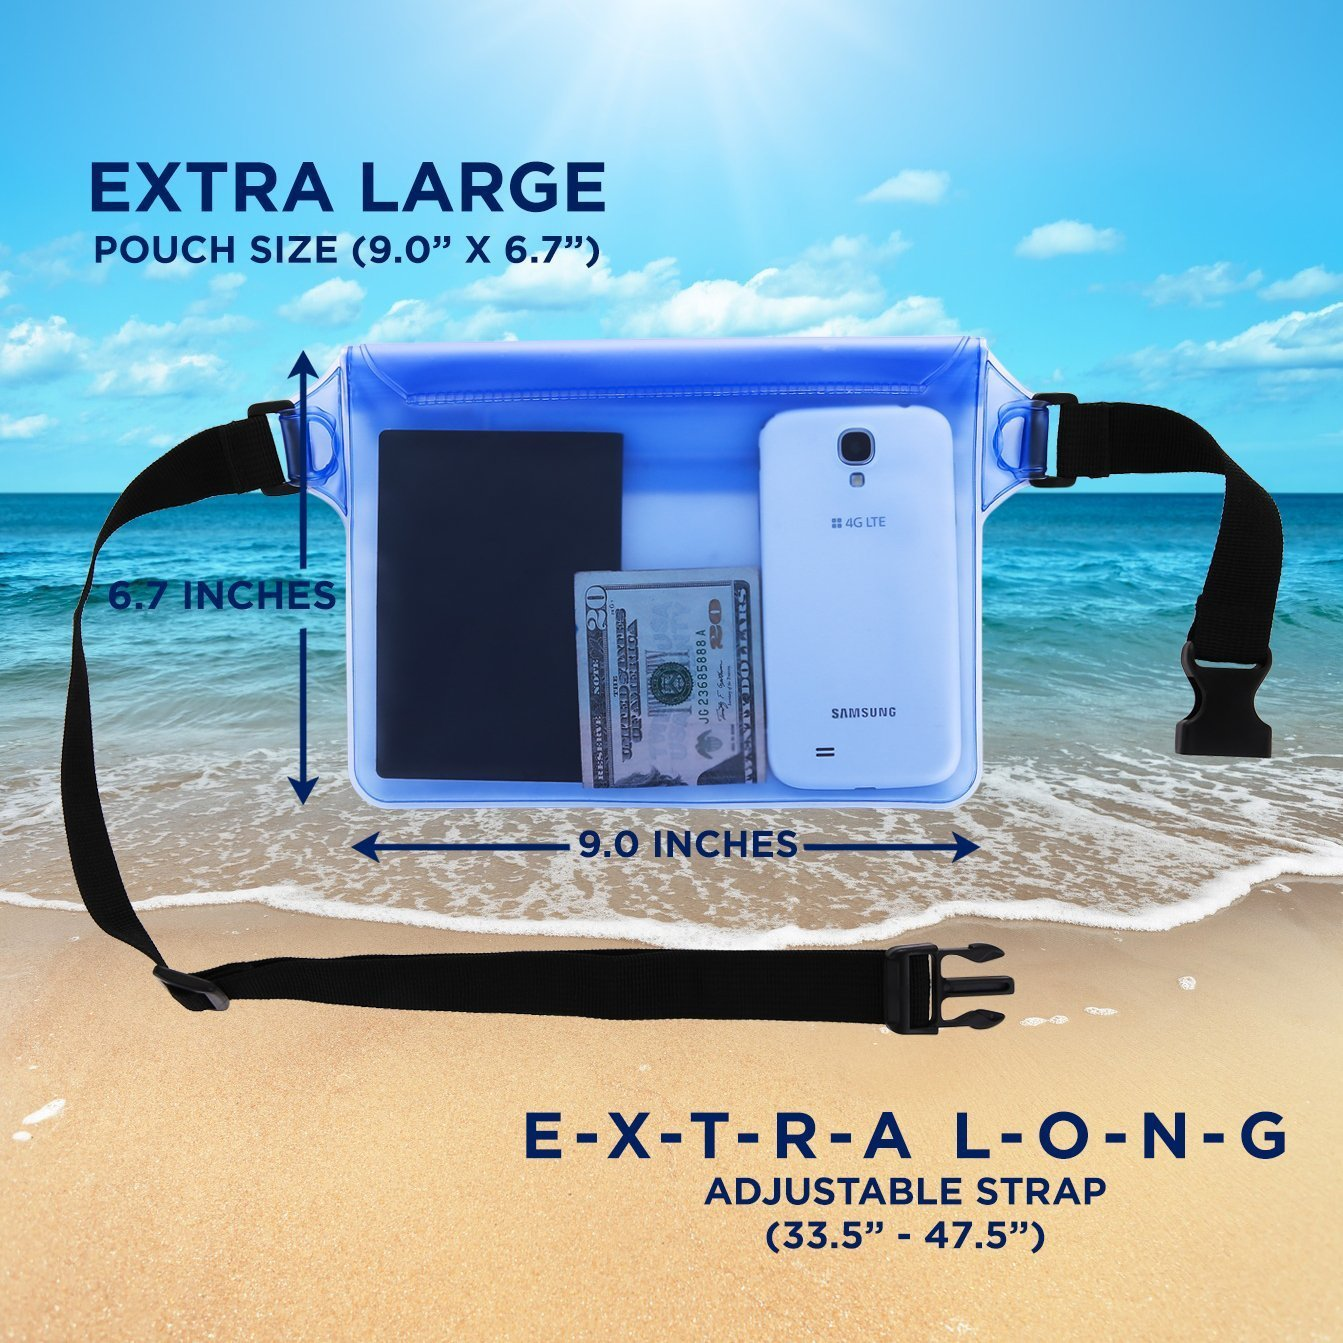 LENPOW Waterproof Pouch with Waist Strap, Water proof Dry Bag Snowproof Dirtproof Sandproof Case Best Way to Keep Your Phone, Valuables Safe Perfect for Boating Swimming Beach Pool Water Park, 2 Pack